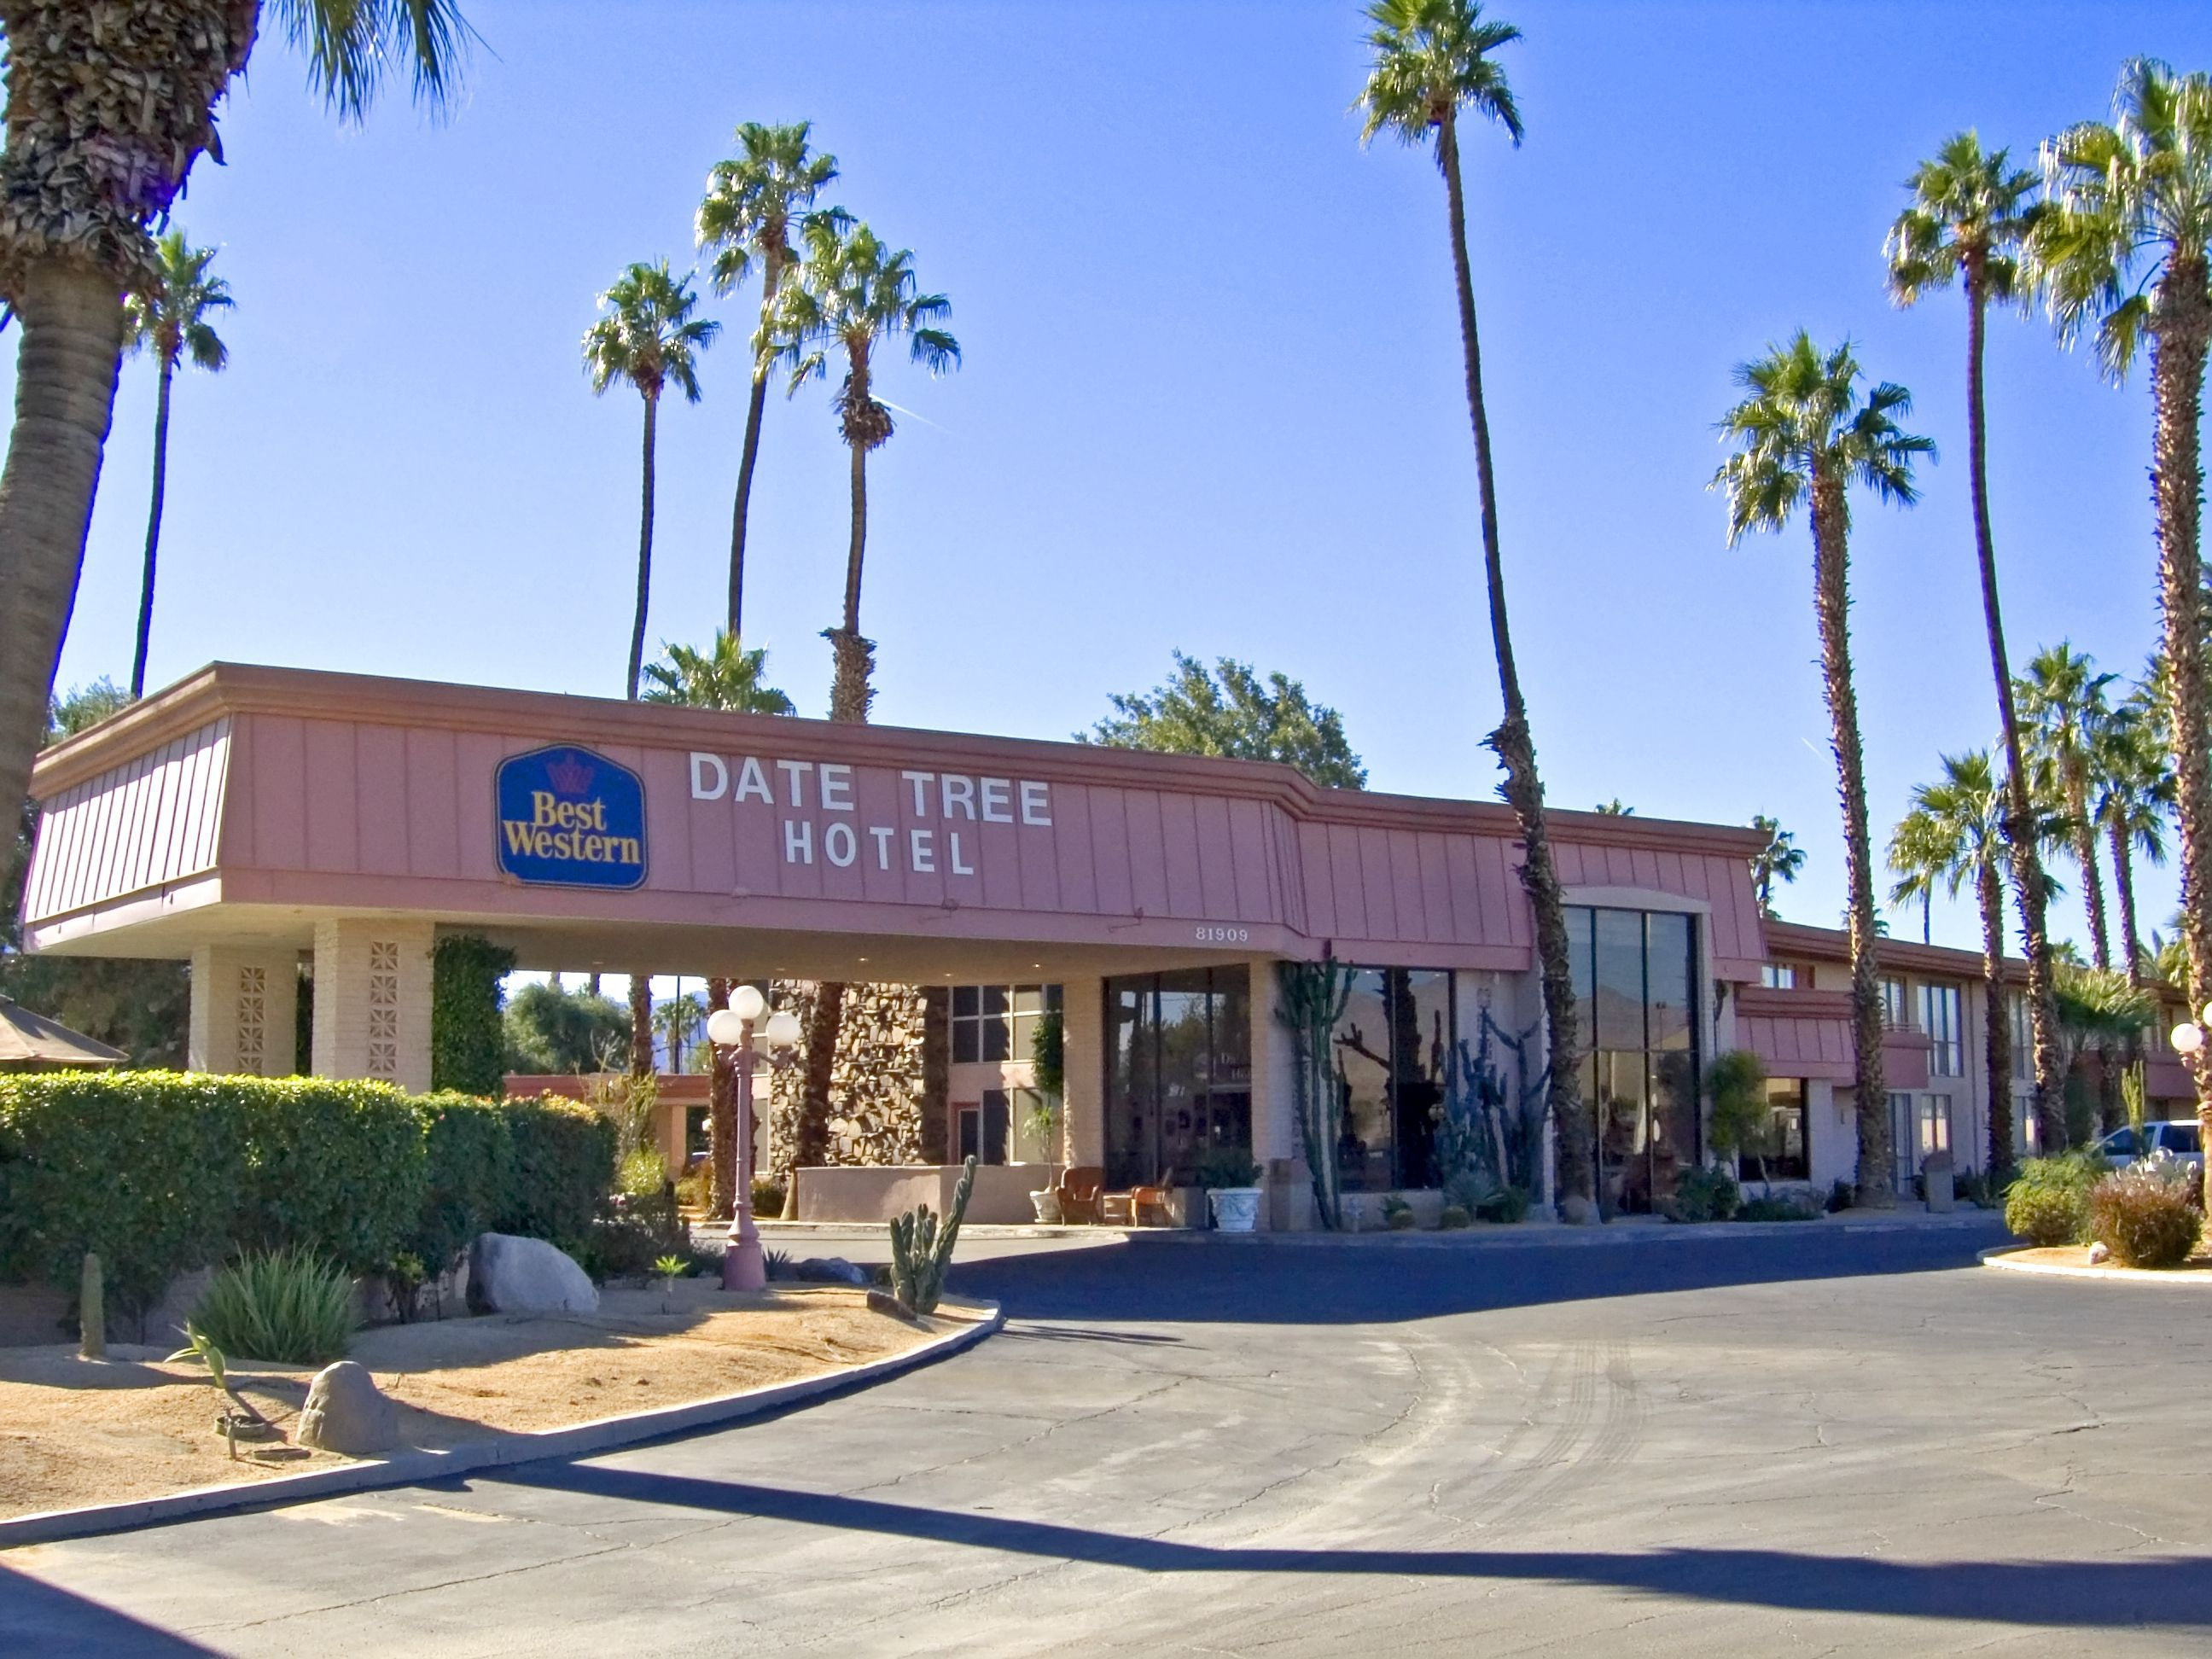 best western dating sites